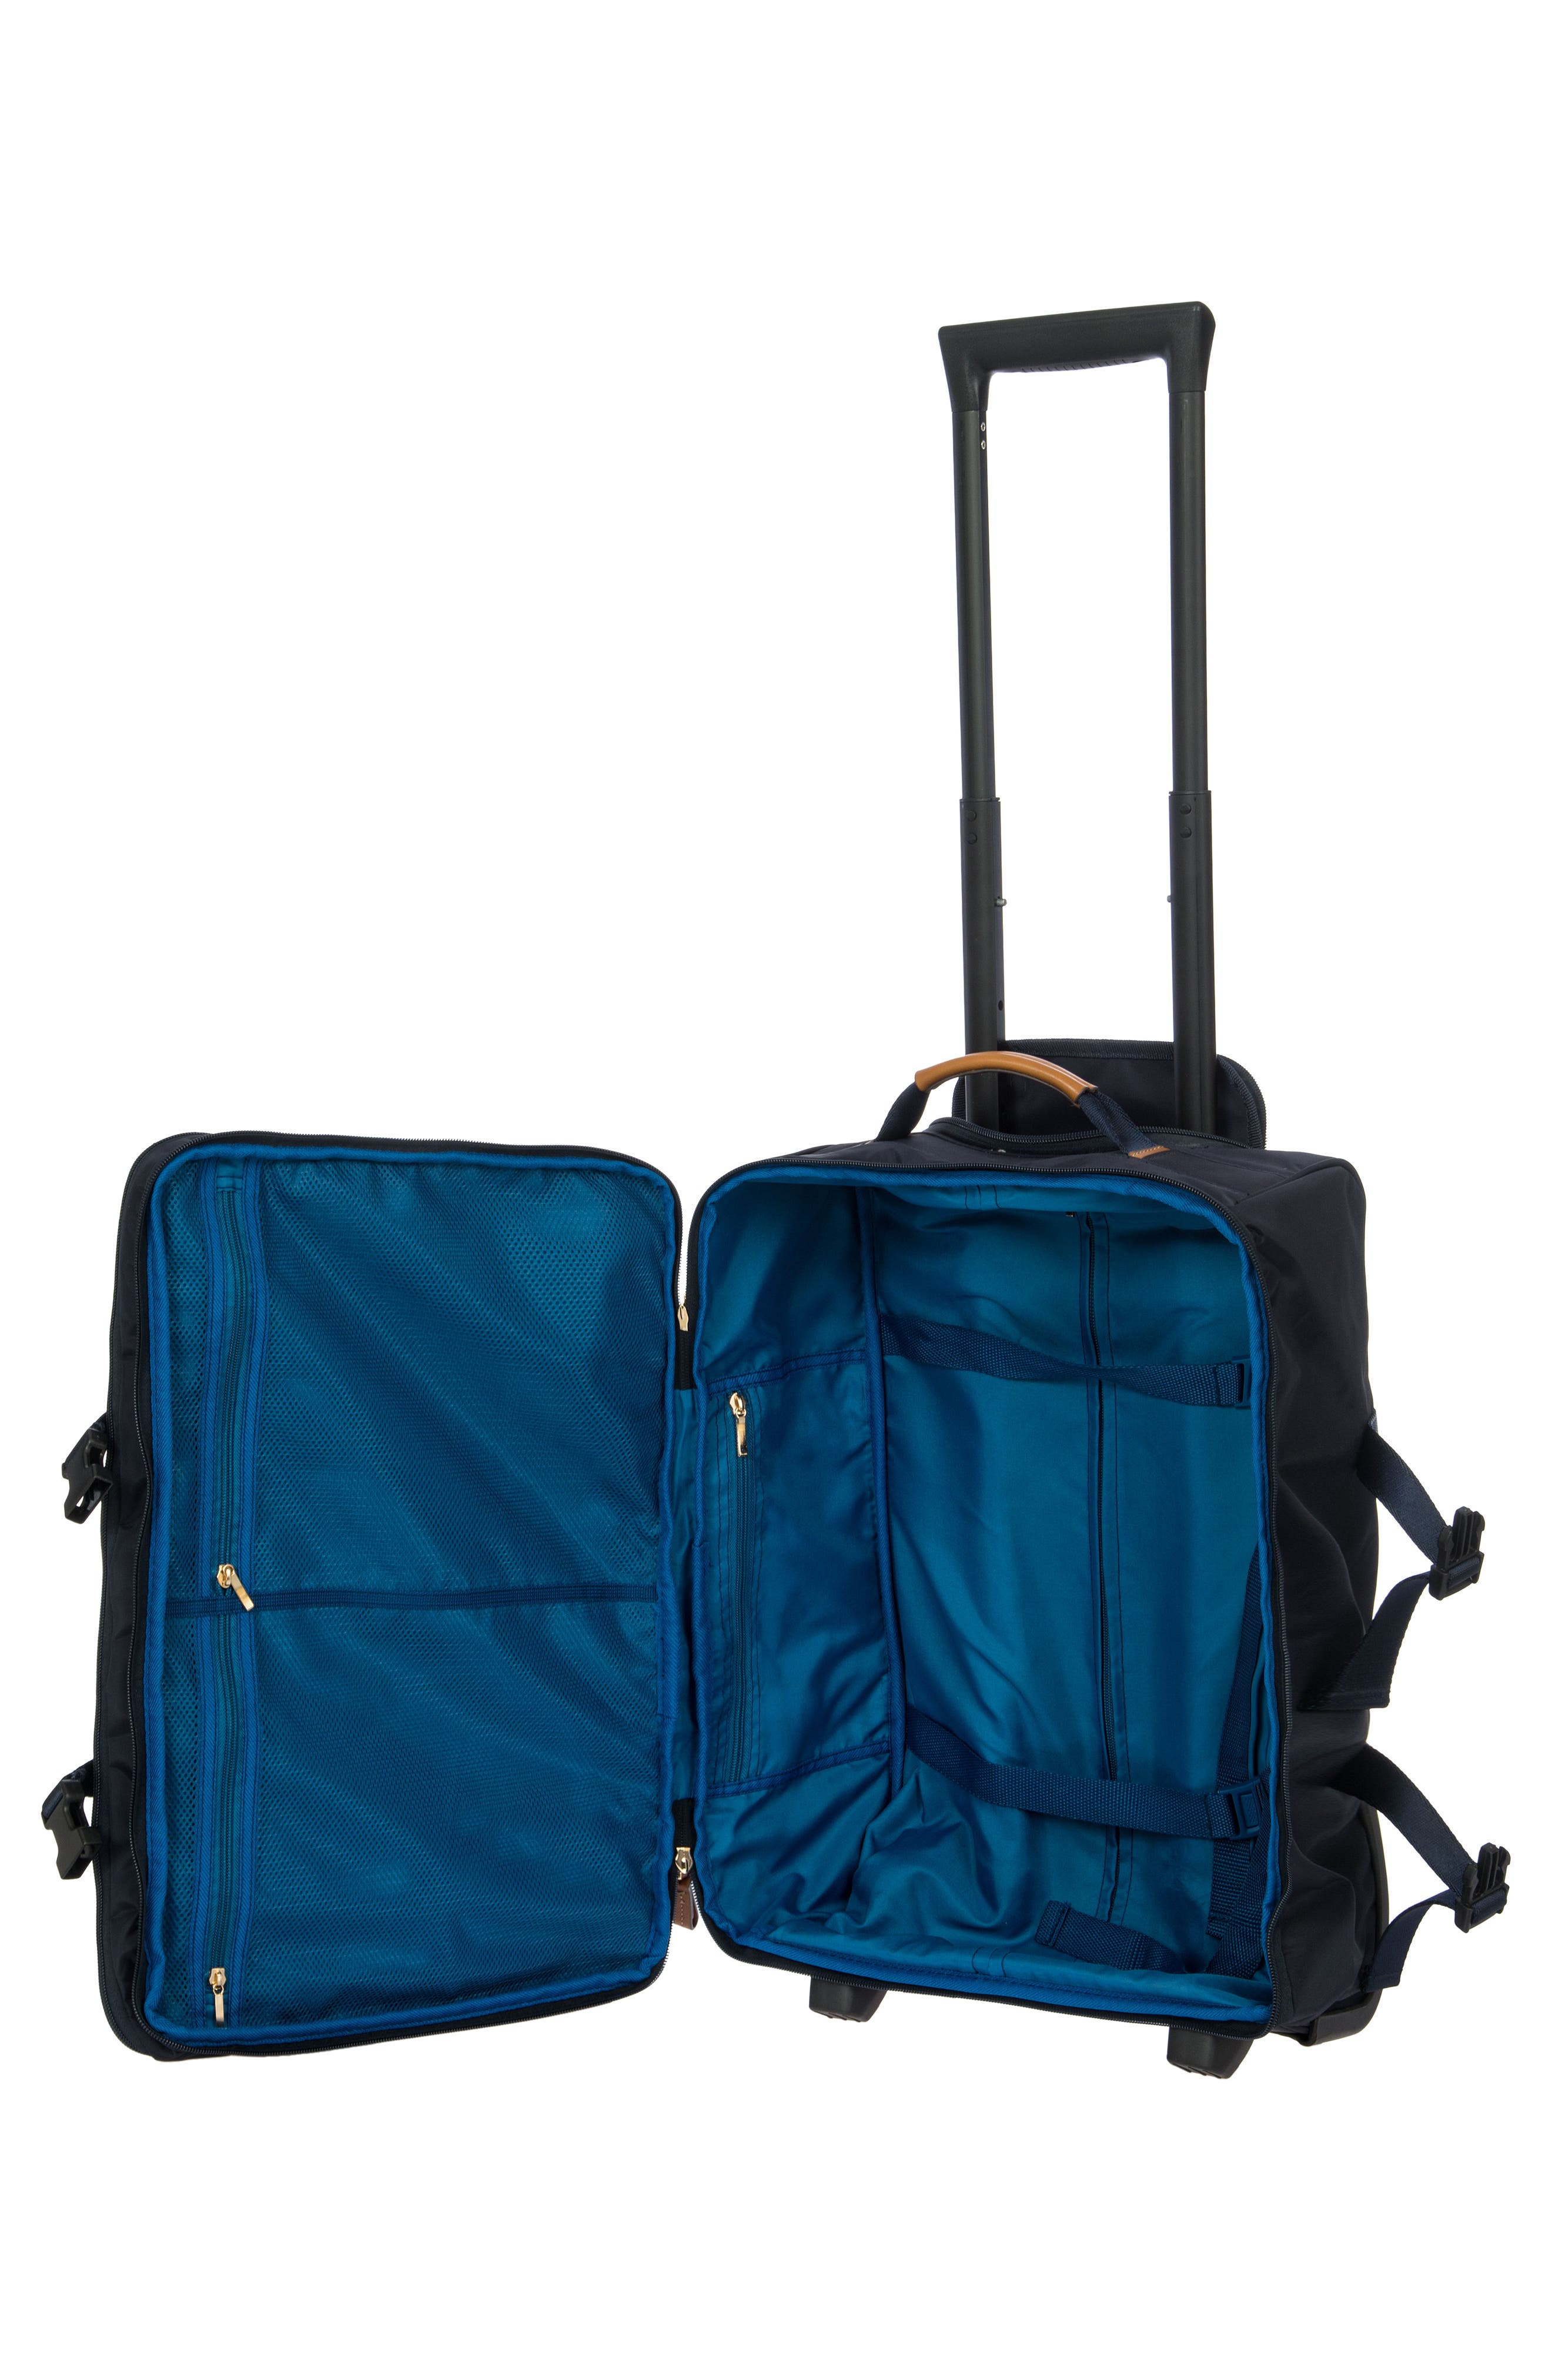 """BRIC'S X-TRAVEL 21"""" MONTAGNA CARRY-ON TROLLEY LUGGAGE, NAVY"""